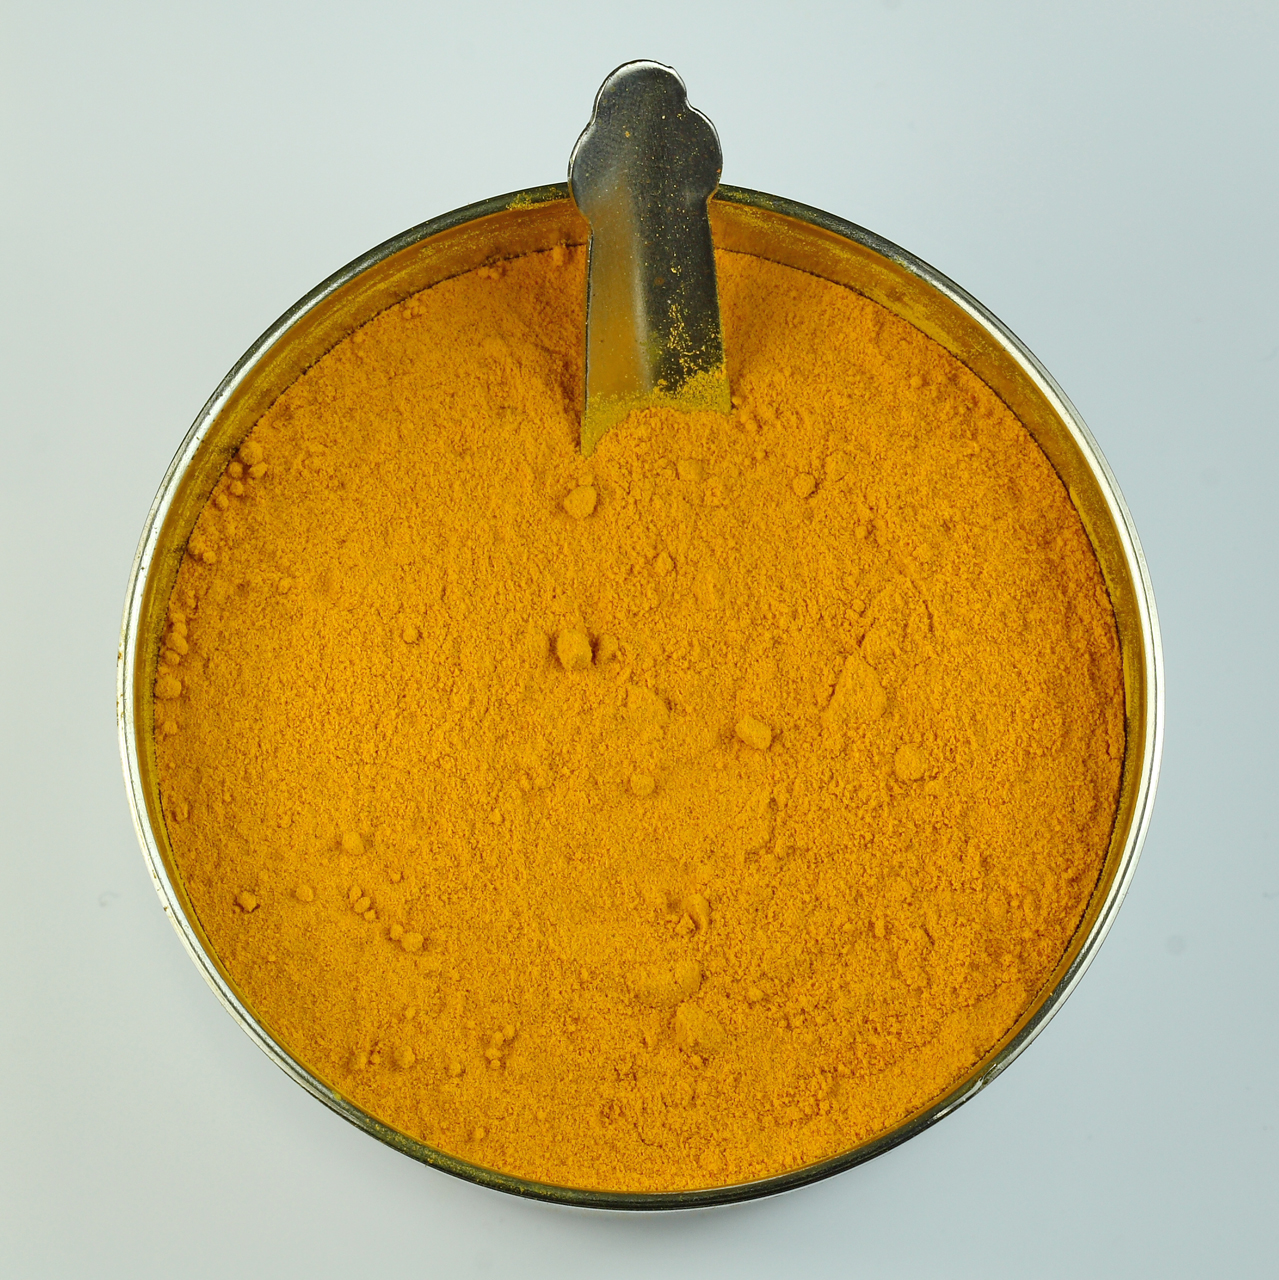 File:Turmeric-powder.jpg - Wikipedia, the free encyclopedia